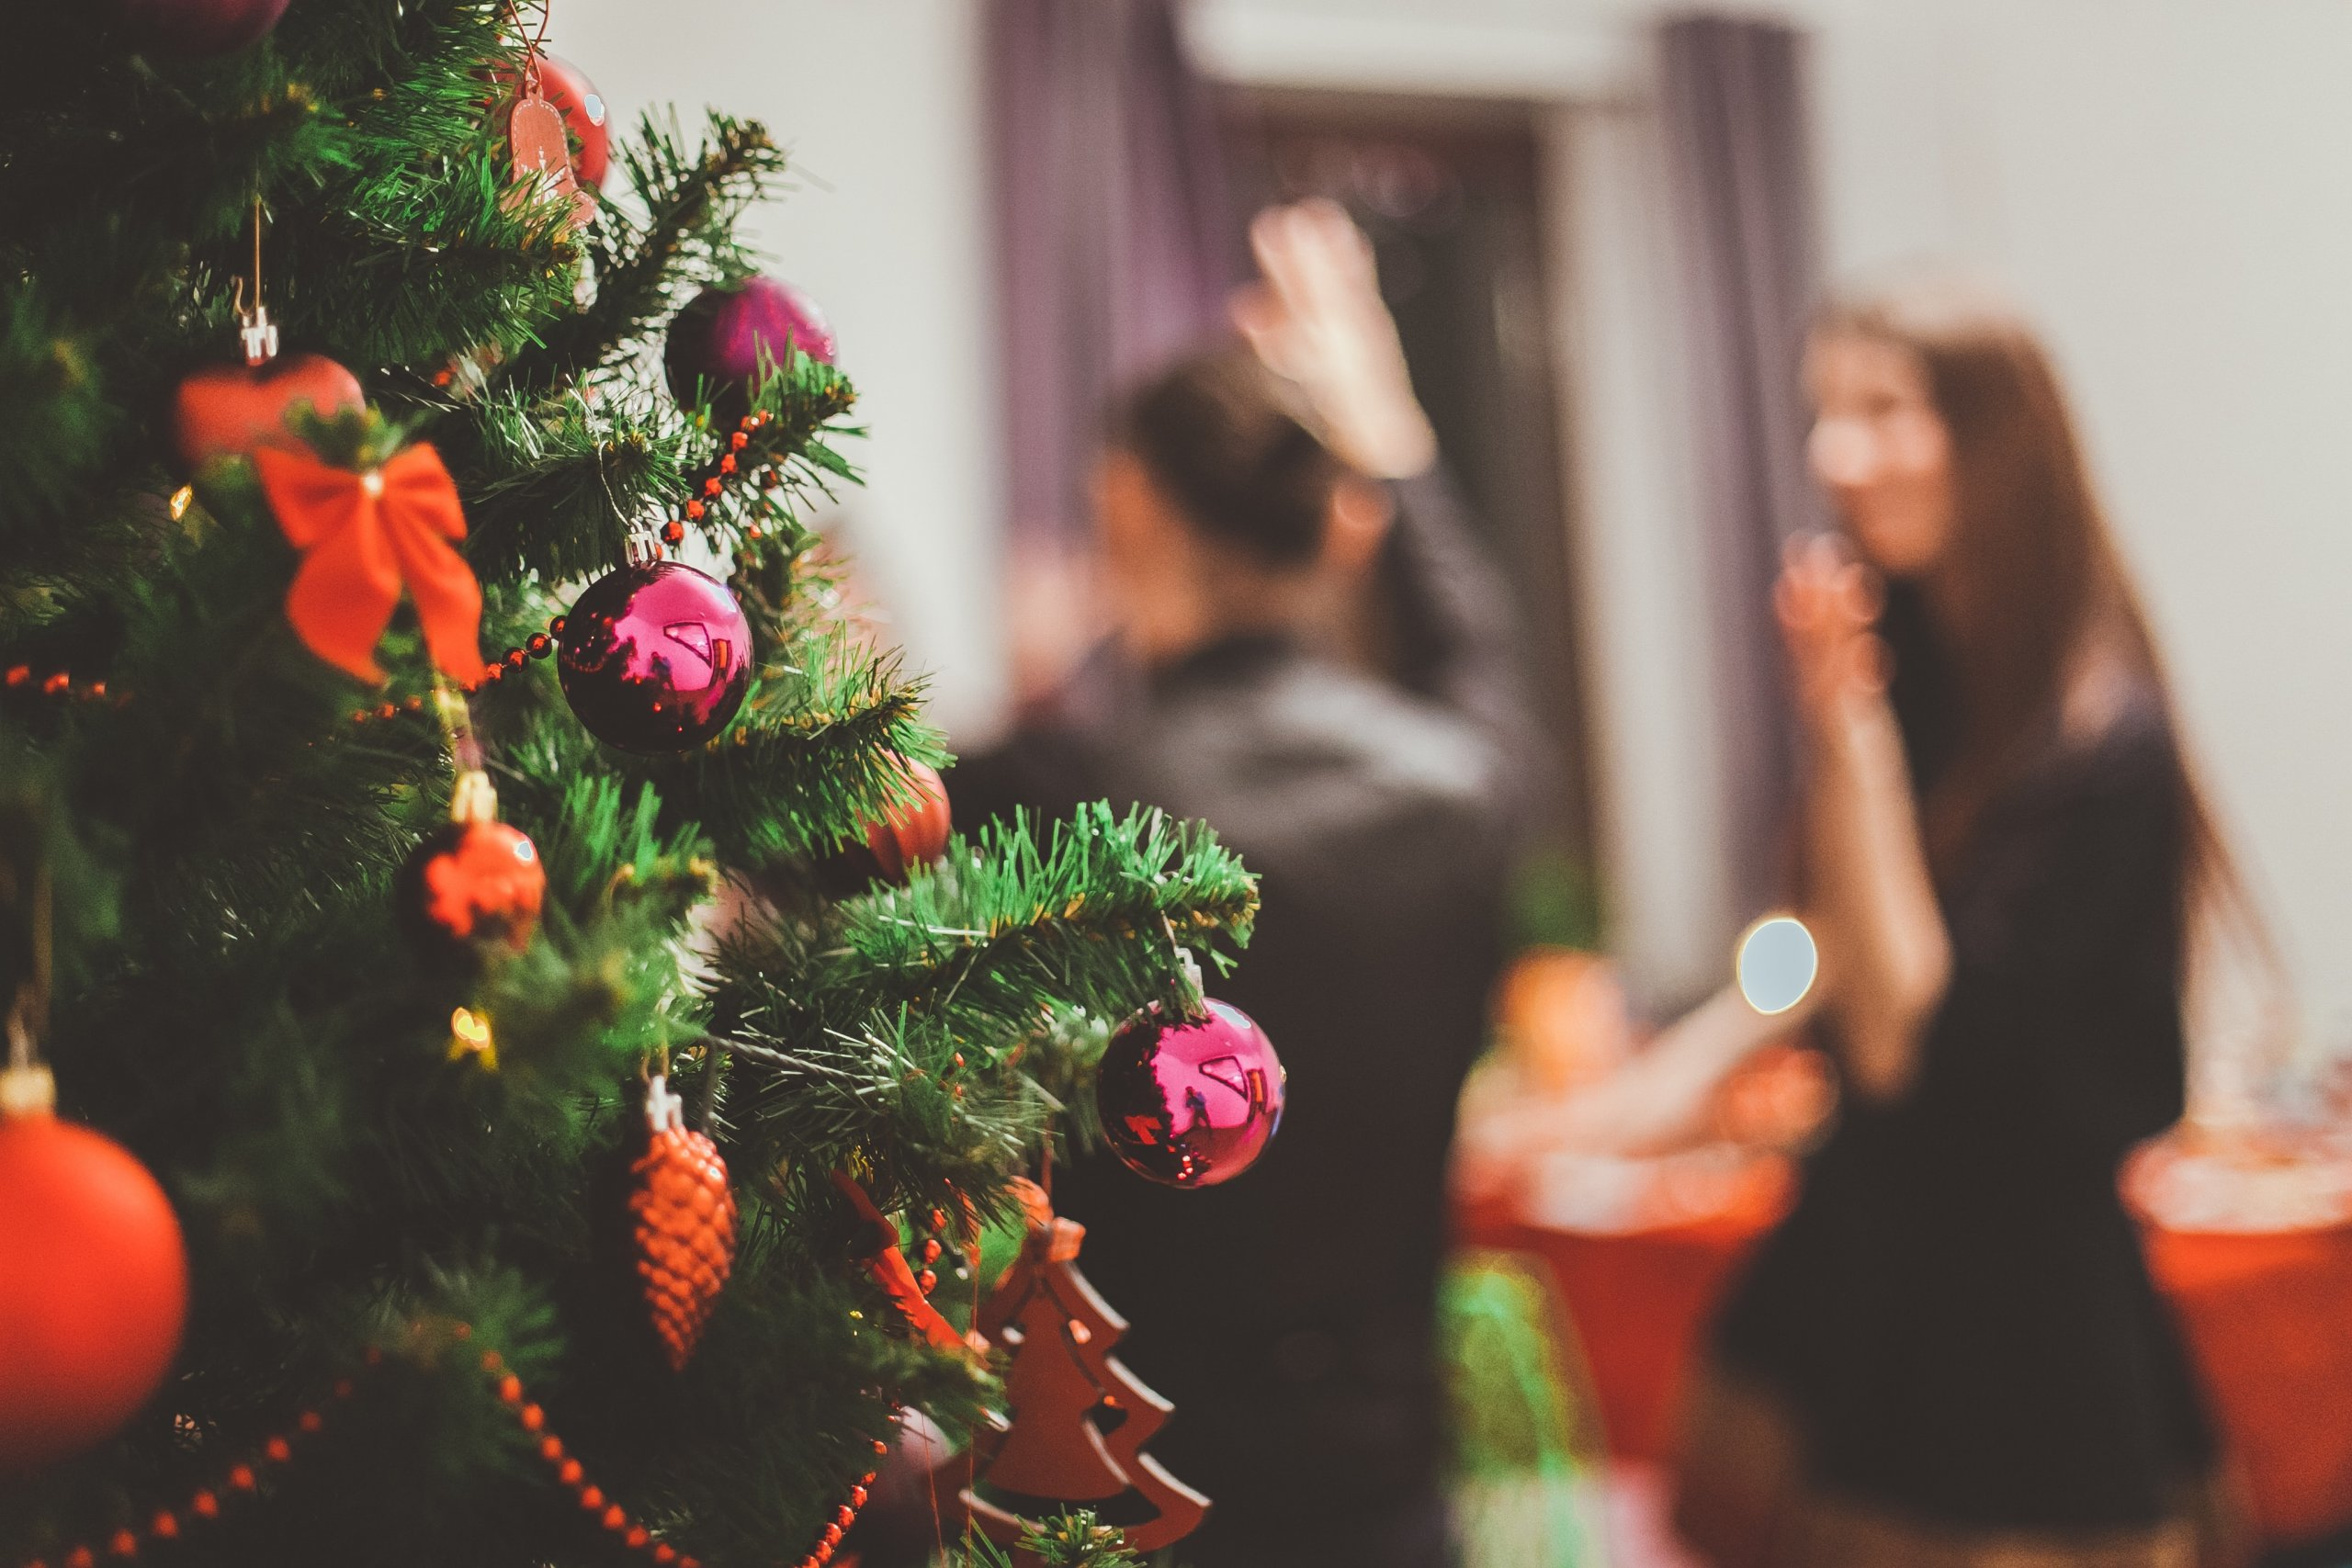 Are work Christmas parties and gifts tax deductible for employees and clients?